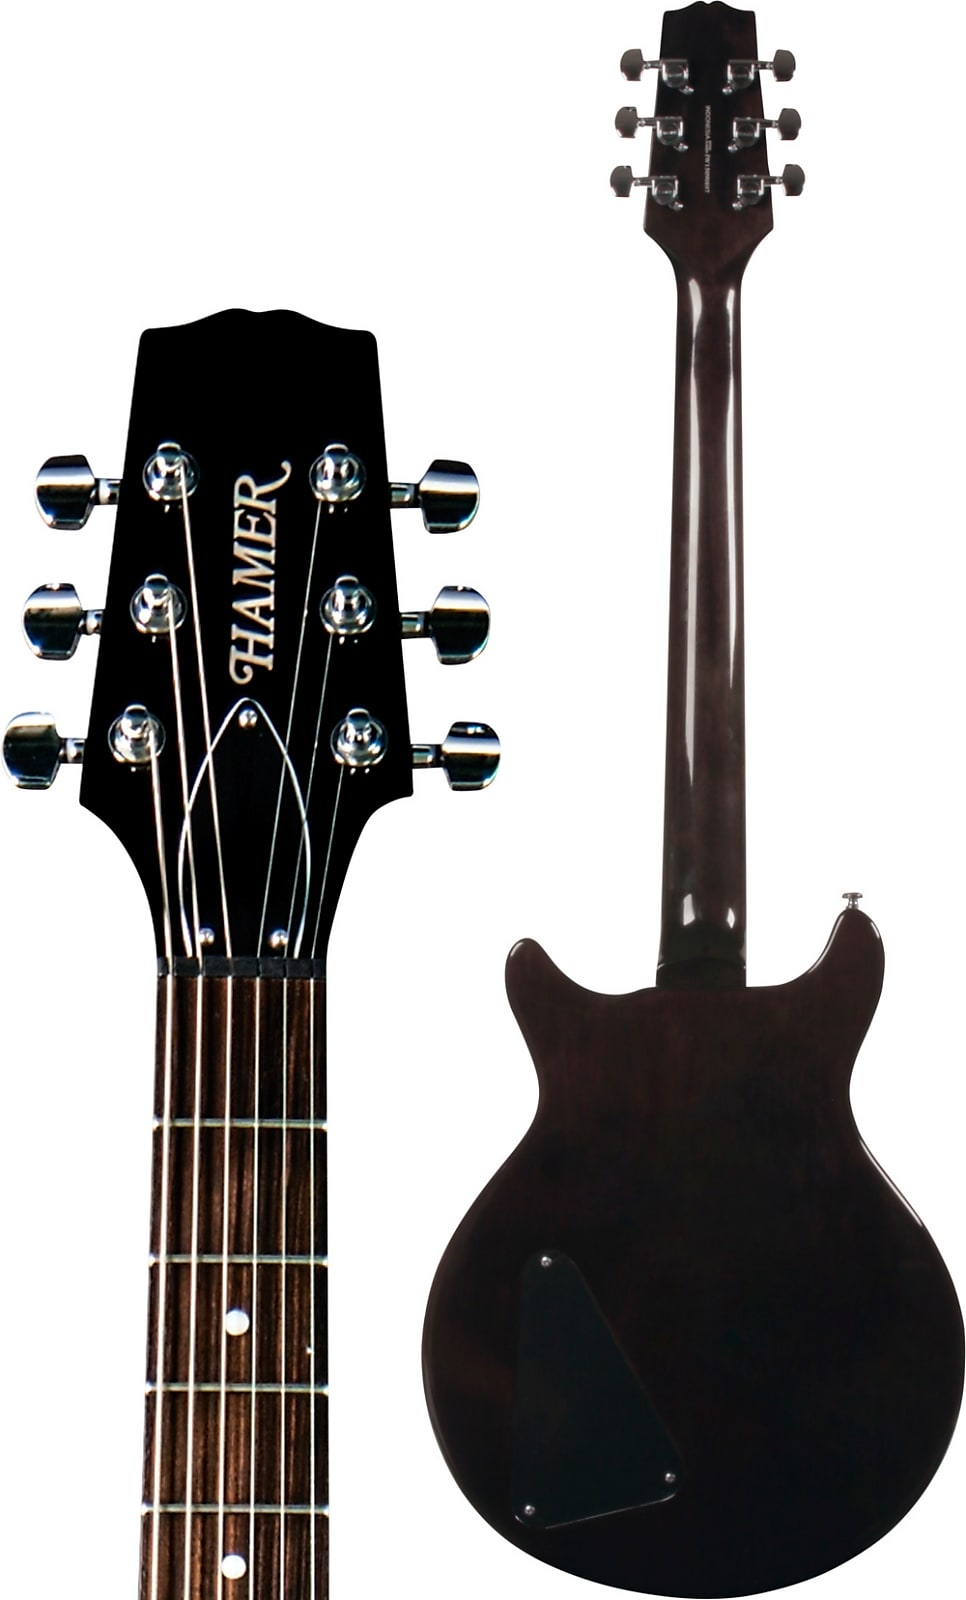 Hamer SATF-TBK Double Cutaway Flame Maple Archtop 6-String Electric Guitar - Transparent Black